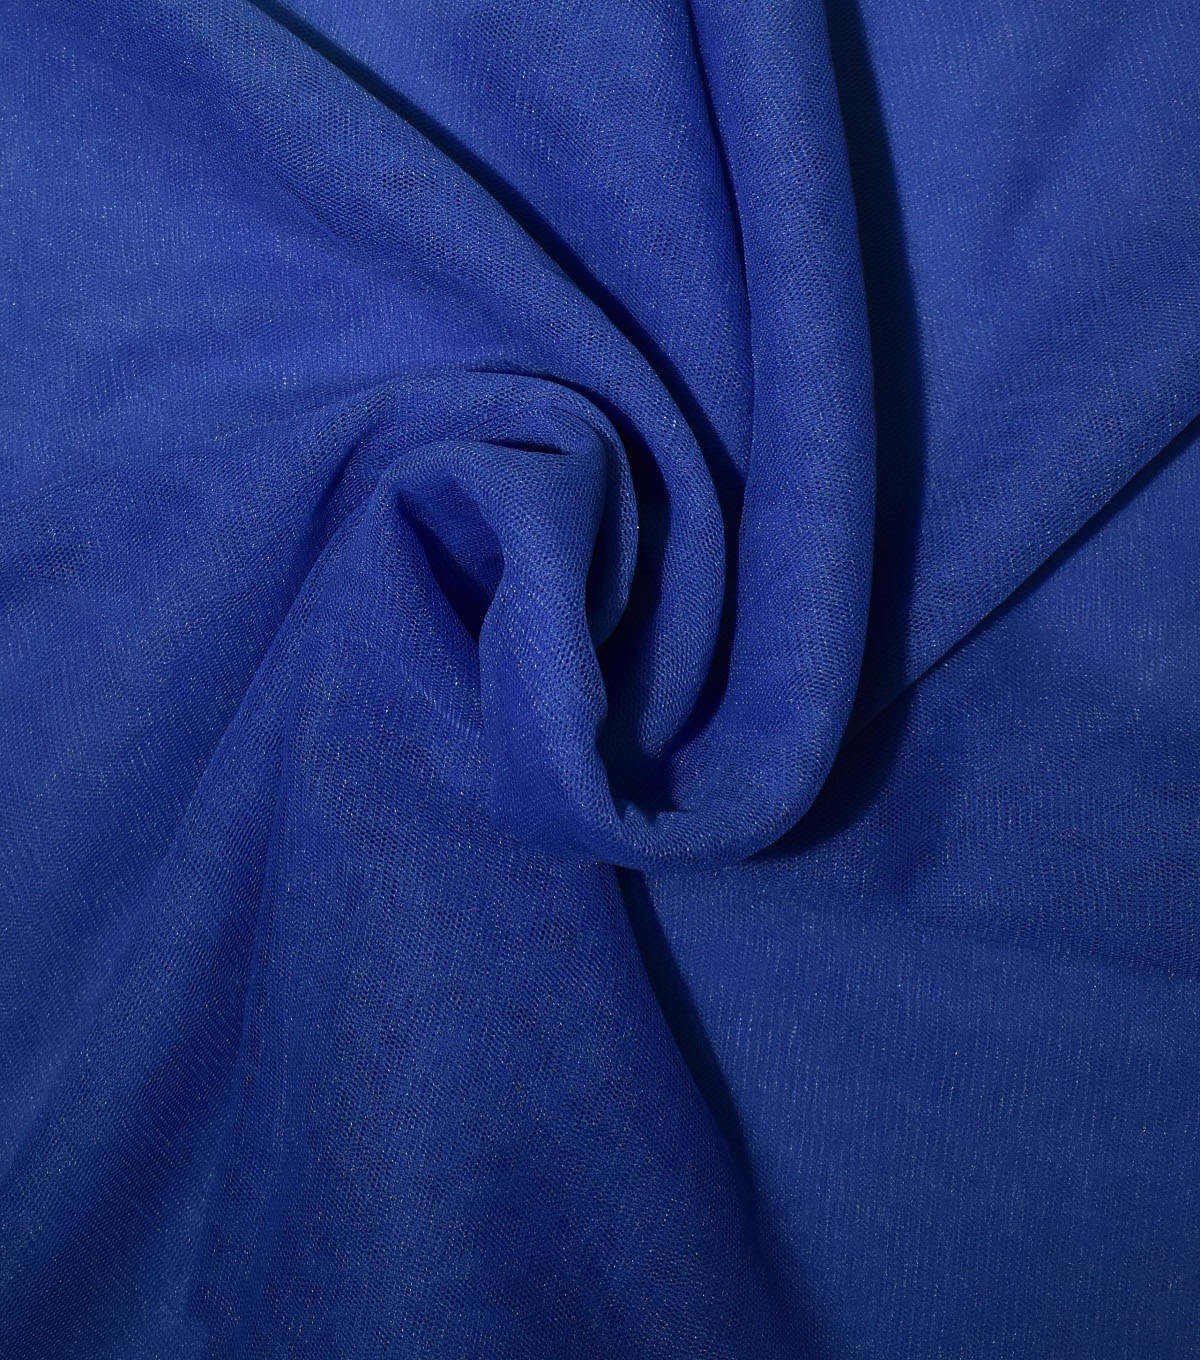 Casa Collection Solid Tulle Fabric 57\u0027\u0027, Moonlight Blue